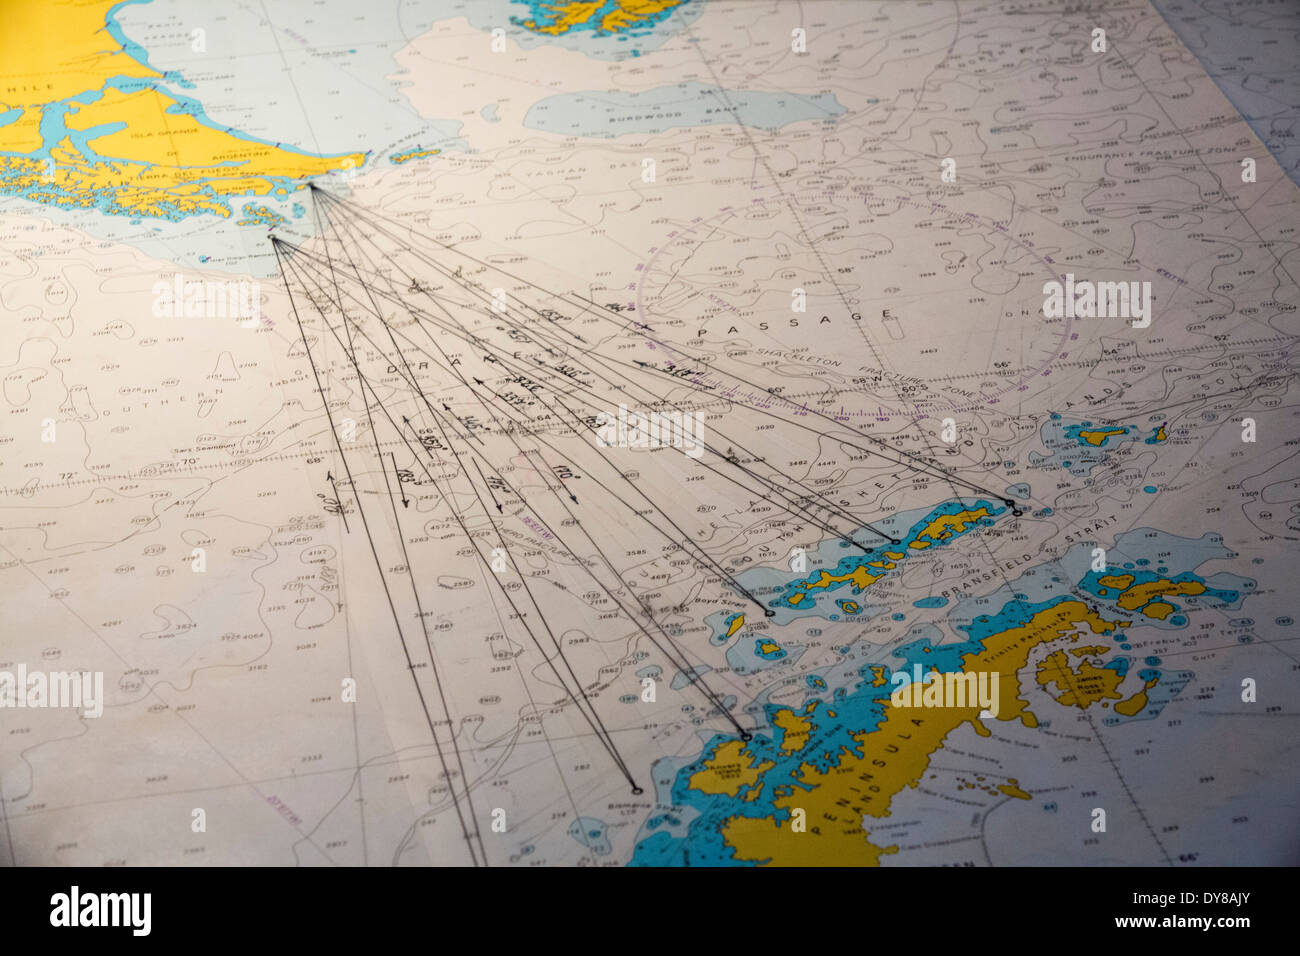 A marine chart plotting the course of the Akademik Sergey Vavilov, an ice strengthened ship on an expedition cruise - Stock Image